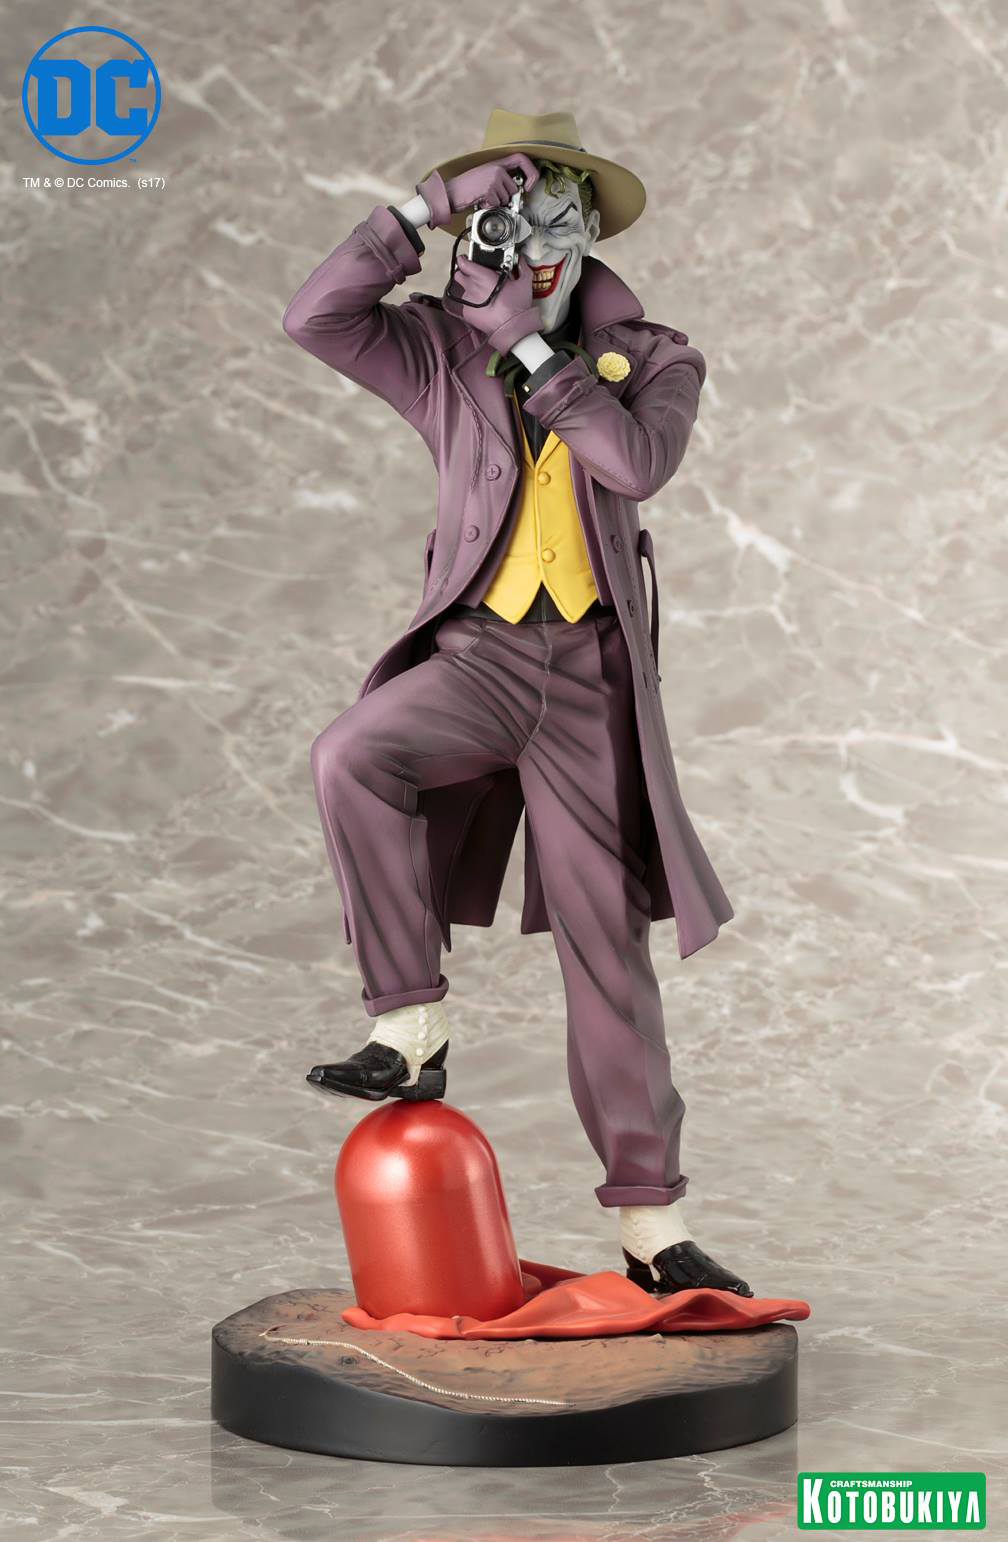 kotobukiya-joker-the-killing-joke-statue-2